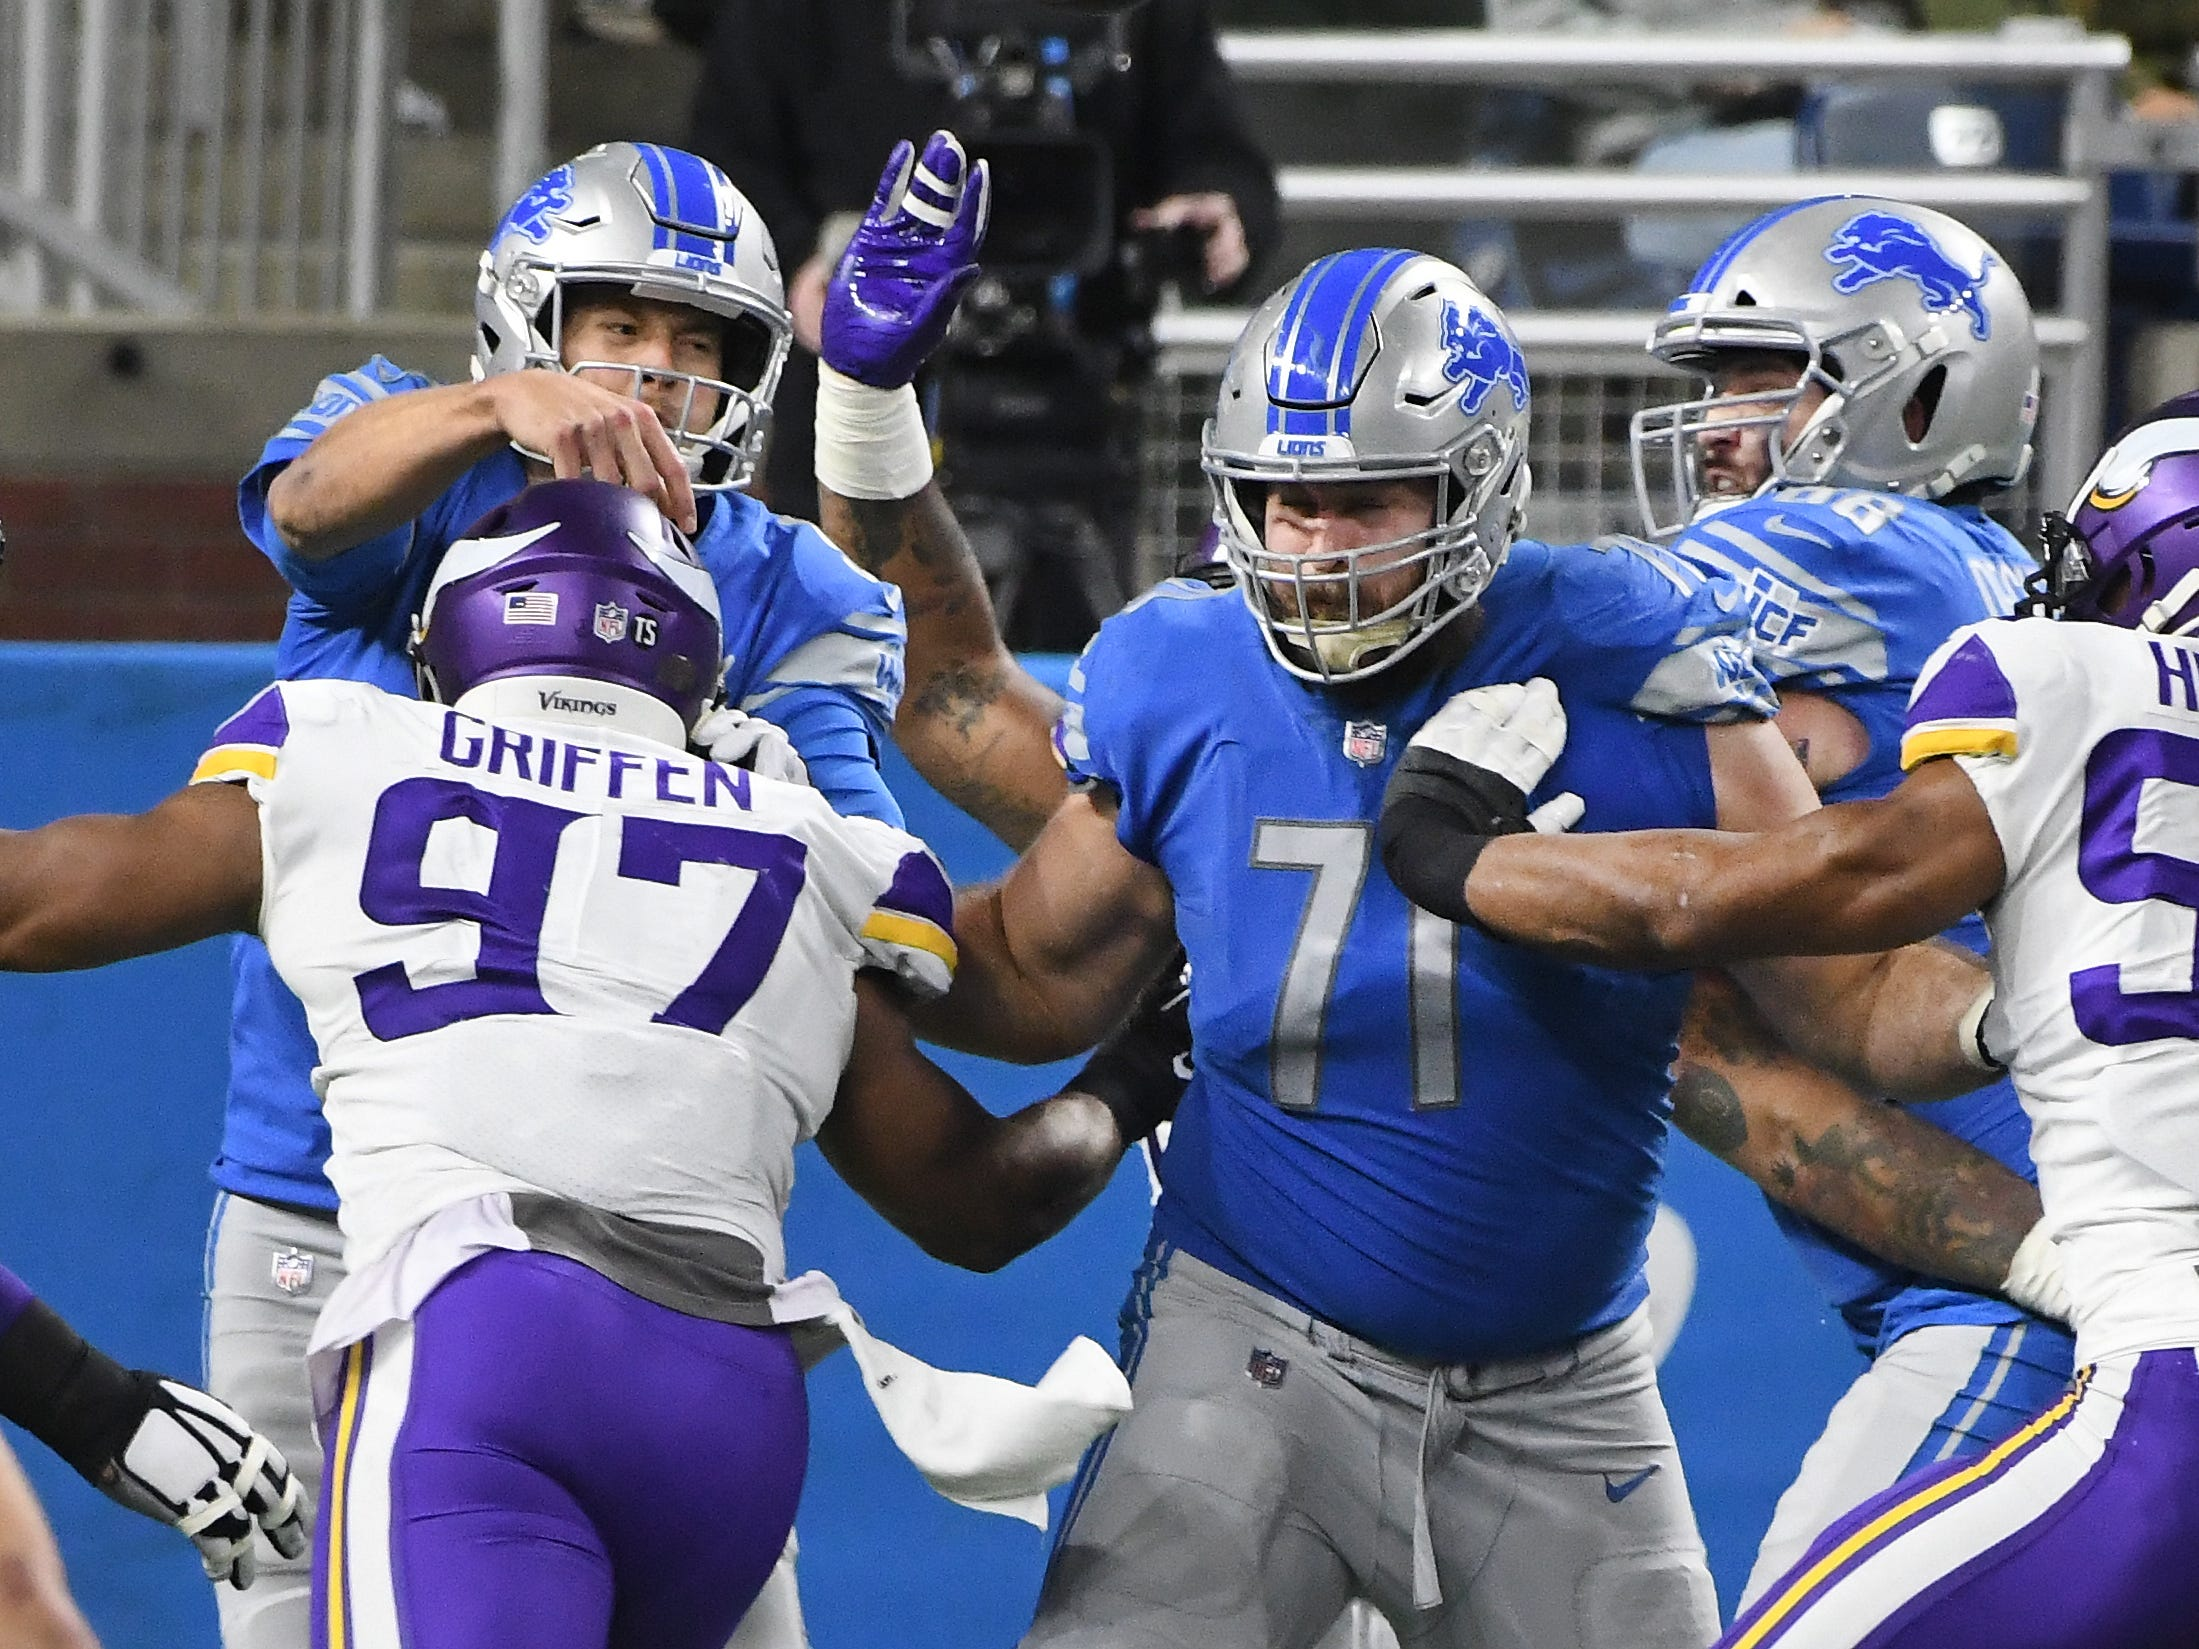 Lions offensive lineman Rick Wagner works on protecting quarterback Matthew Stafford after showing in the third quarter.